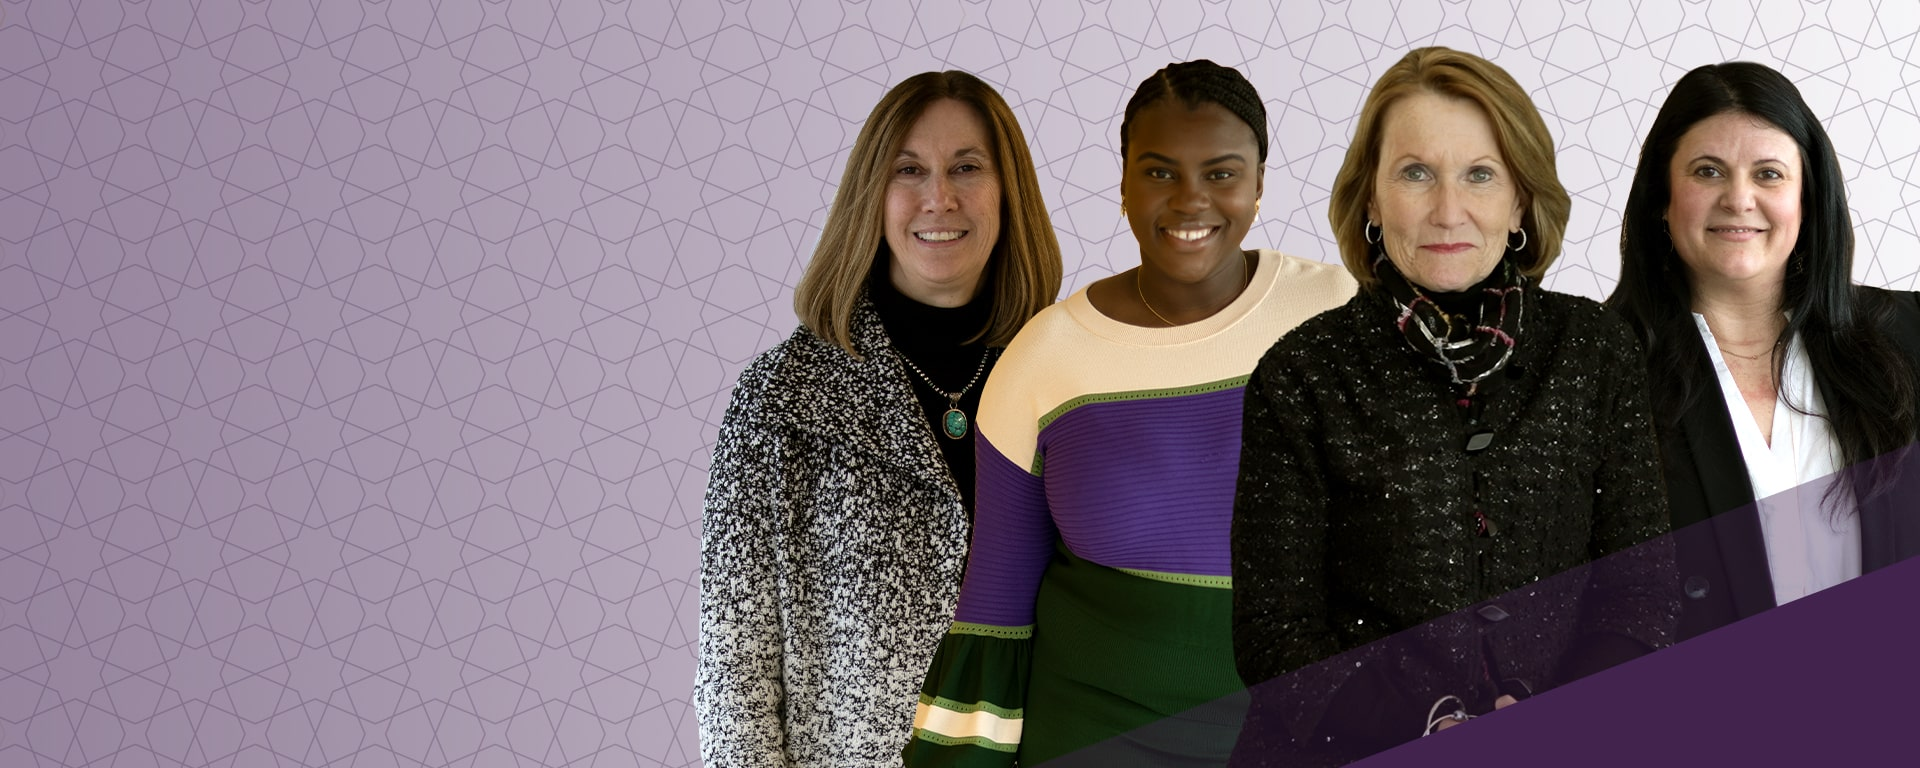 Composite photo featuring: Karen Heinz, Isioma Nwabuzor, Mary Ellen Stanek and Veronica Arias